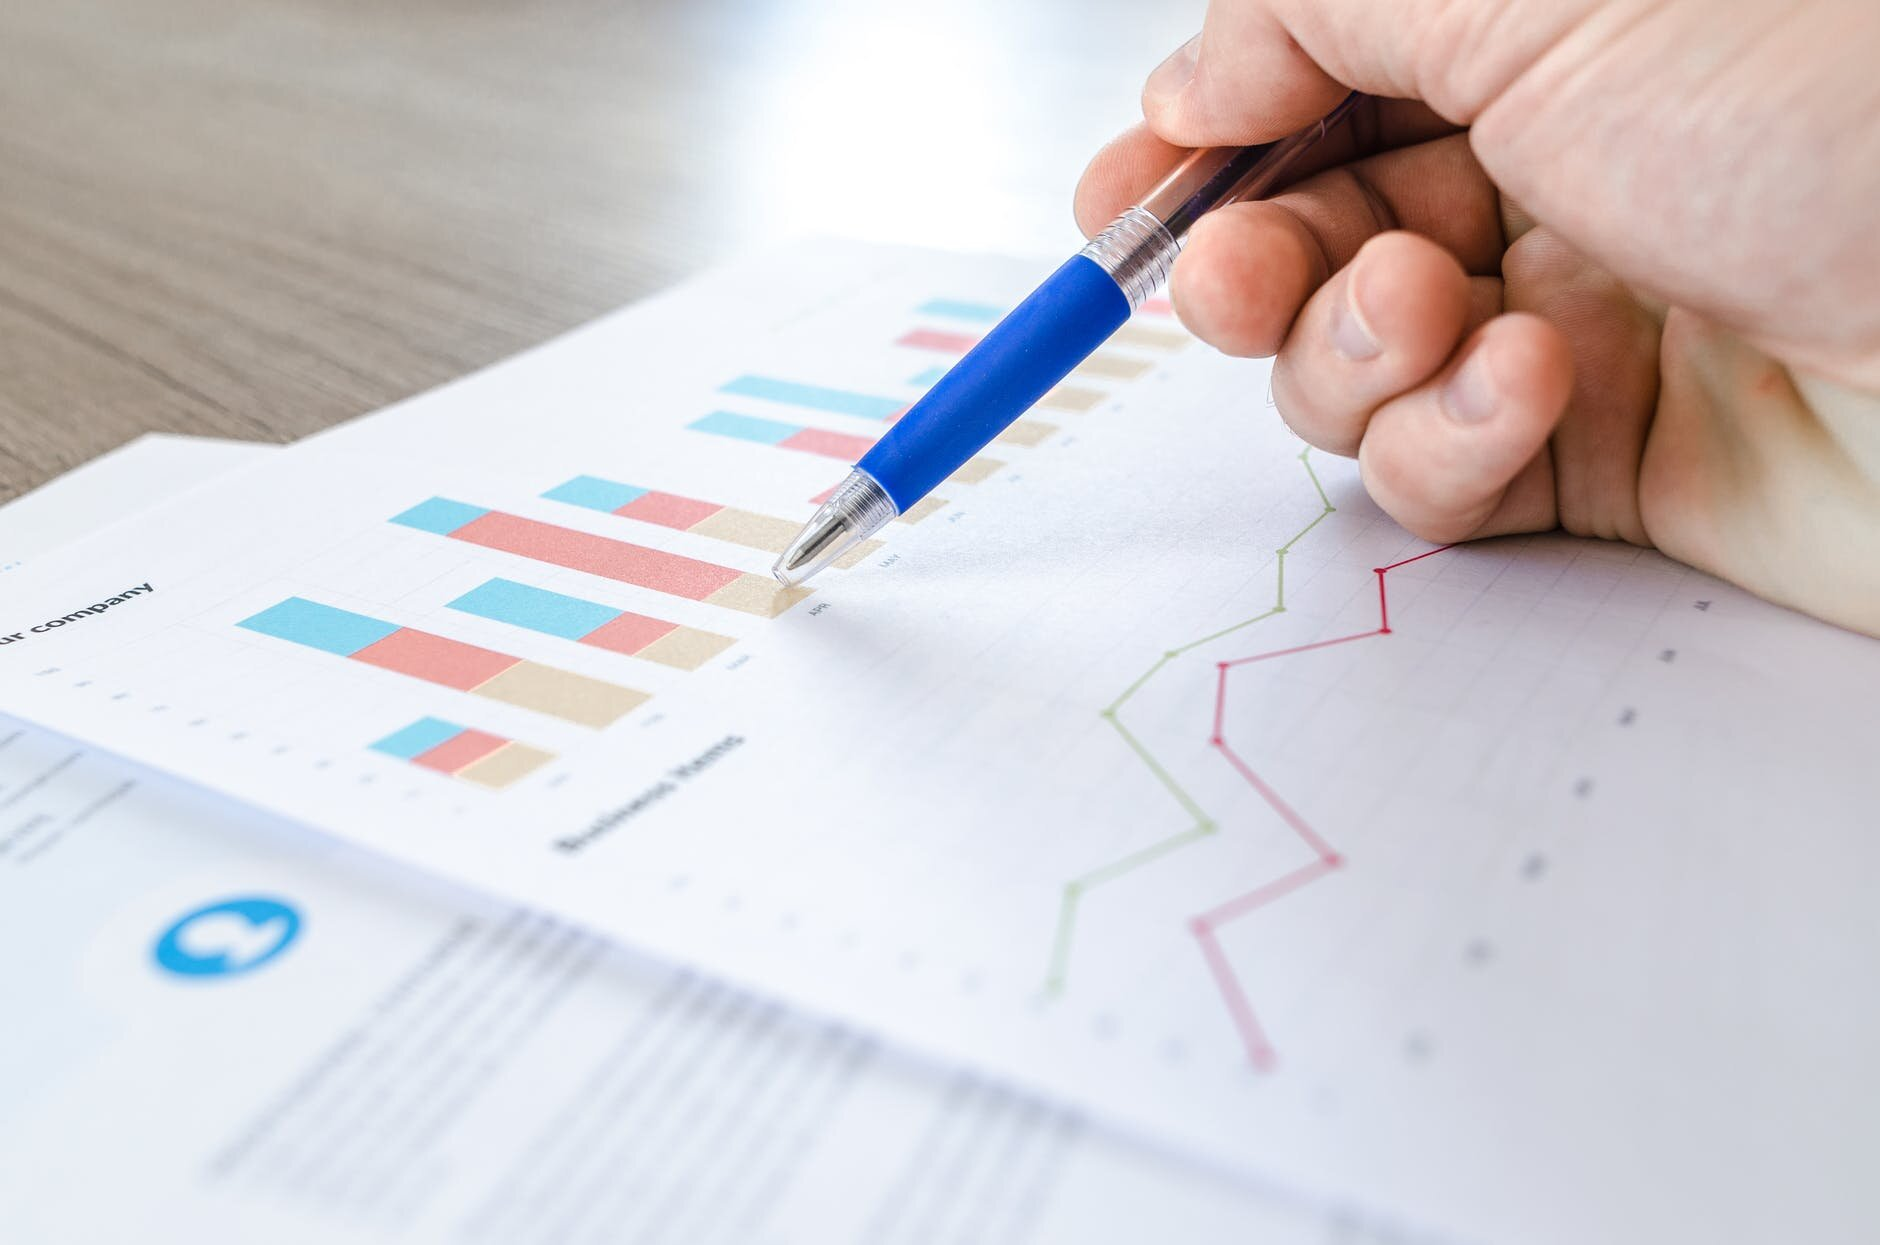 What Is Intent Data And What Are The Most Effective Ways To Use It To Drive Sales